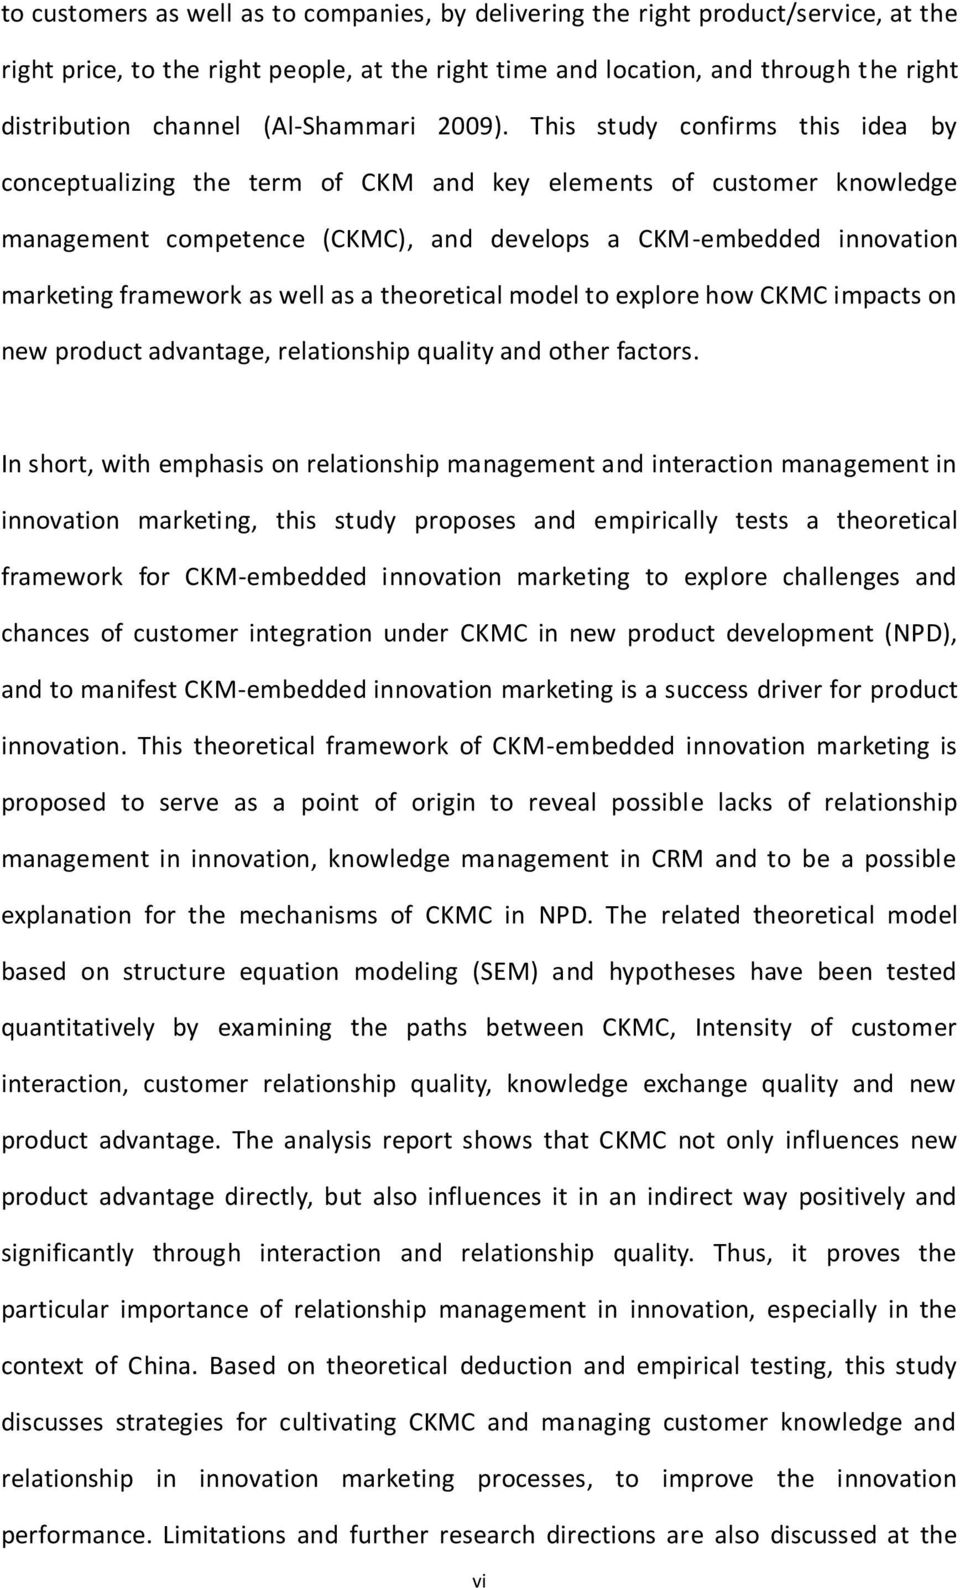 This study confirms this idea by conceptualizing the term of CKM and key elements of customer knowledge management competence (CKMC), and develops a CKM-embedded innovation marketing framework as